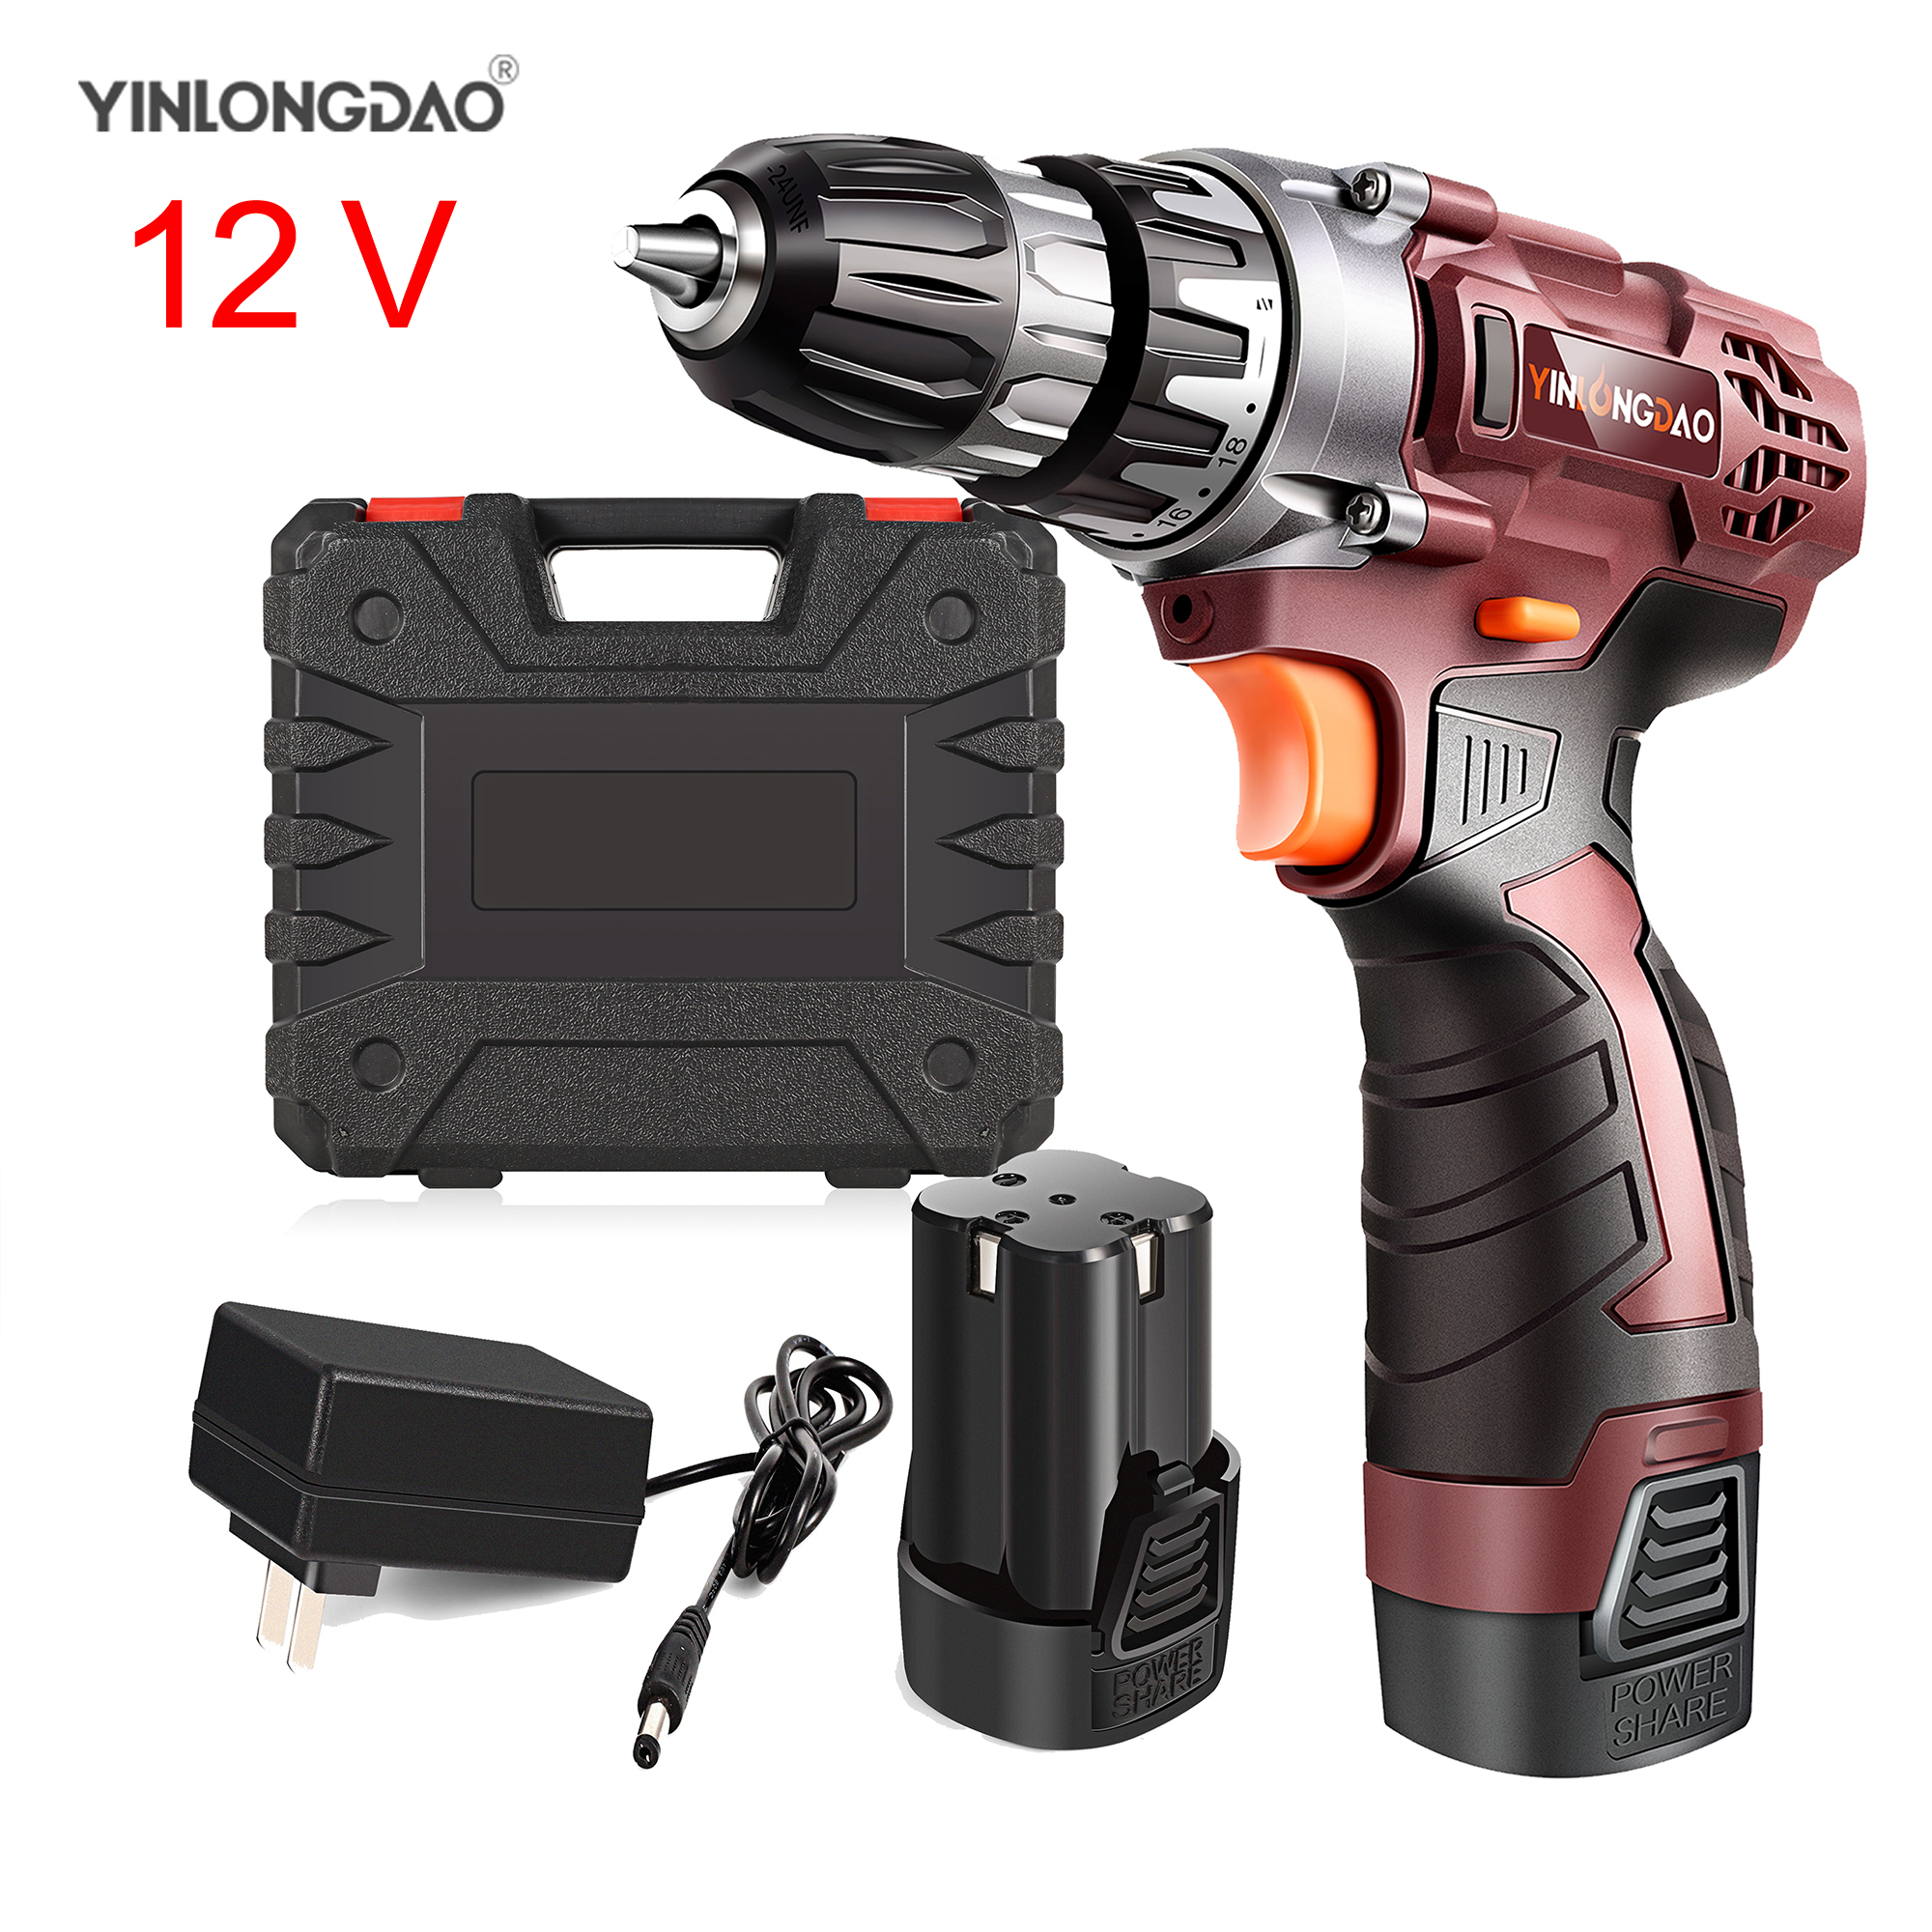 12V Lithium drill Electric Screwdriver Cordless Drill  Lithium Ion Battery Wireless Power Driver DIY Torque drill Power Tools-in Power Tool Accessories from Tools on